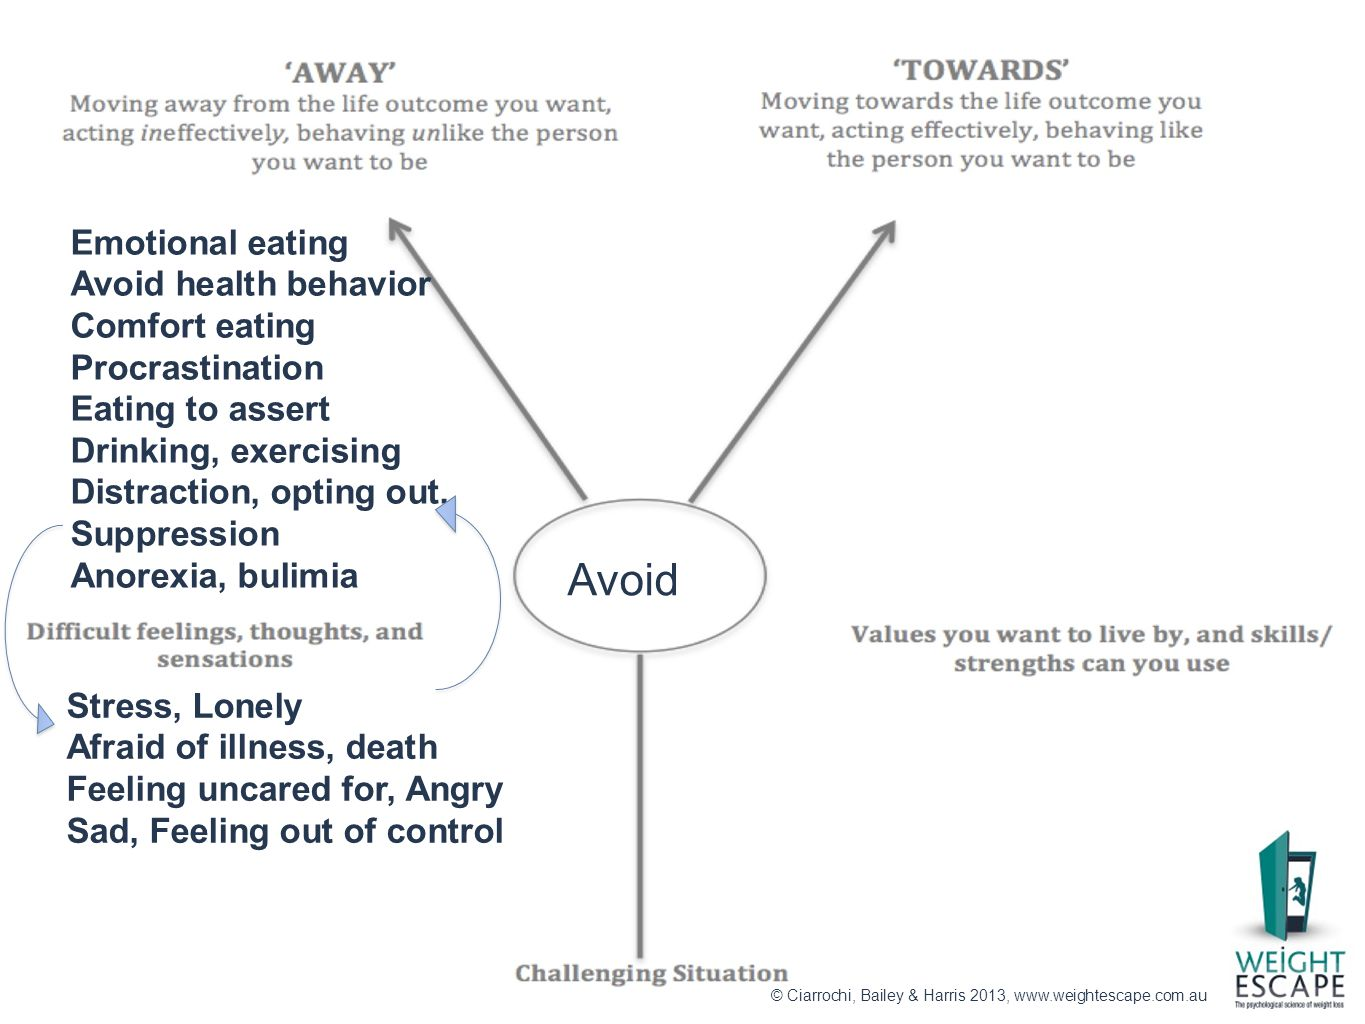 Stress, Lonely Afraid of illness, death Feeling uncared for, Angry Sad, Feeling out of control Emotional eating Avoid health behavior Comfort eating P